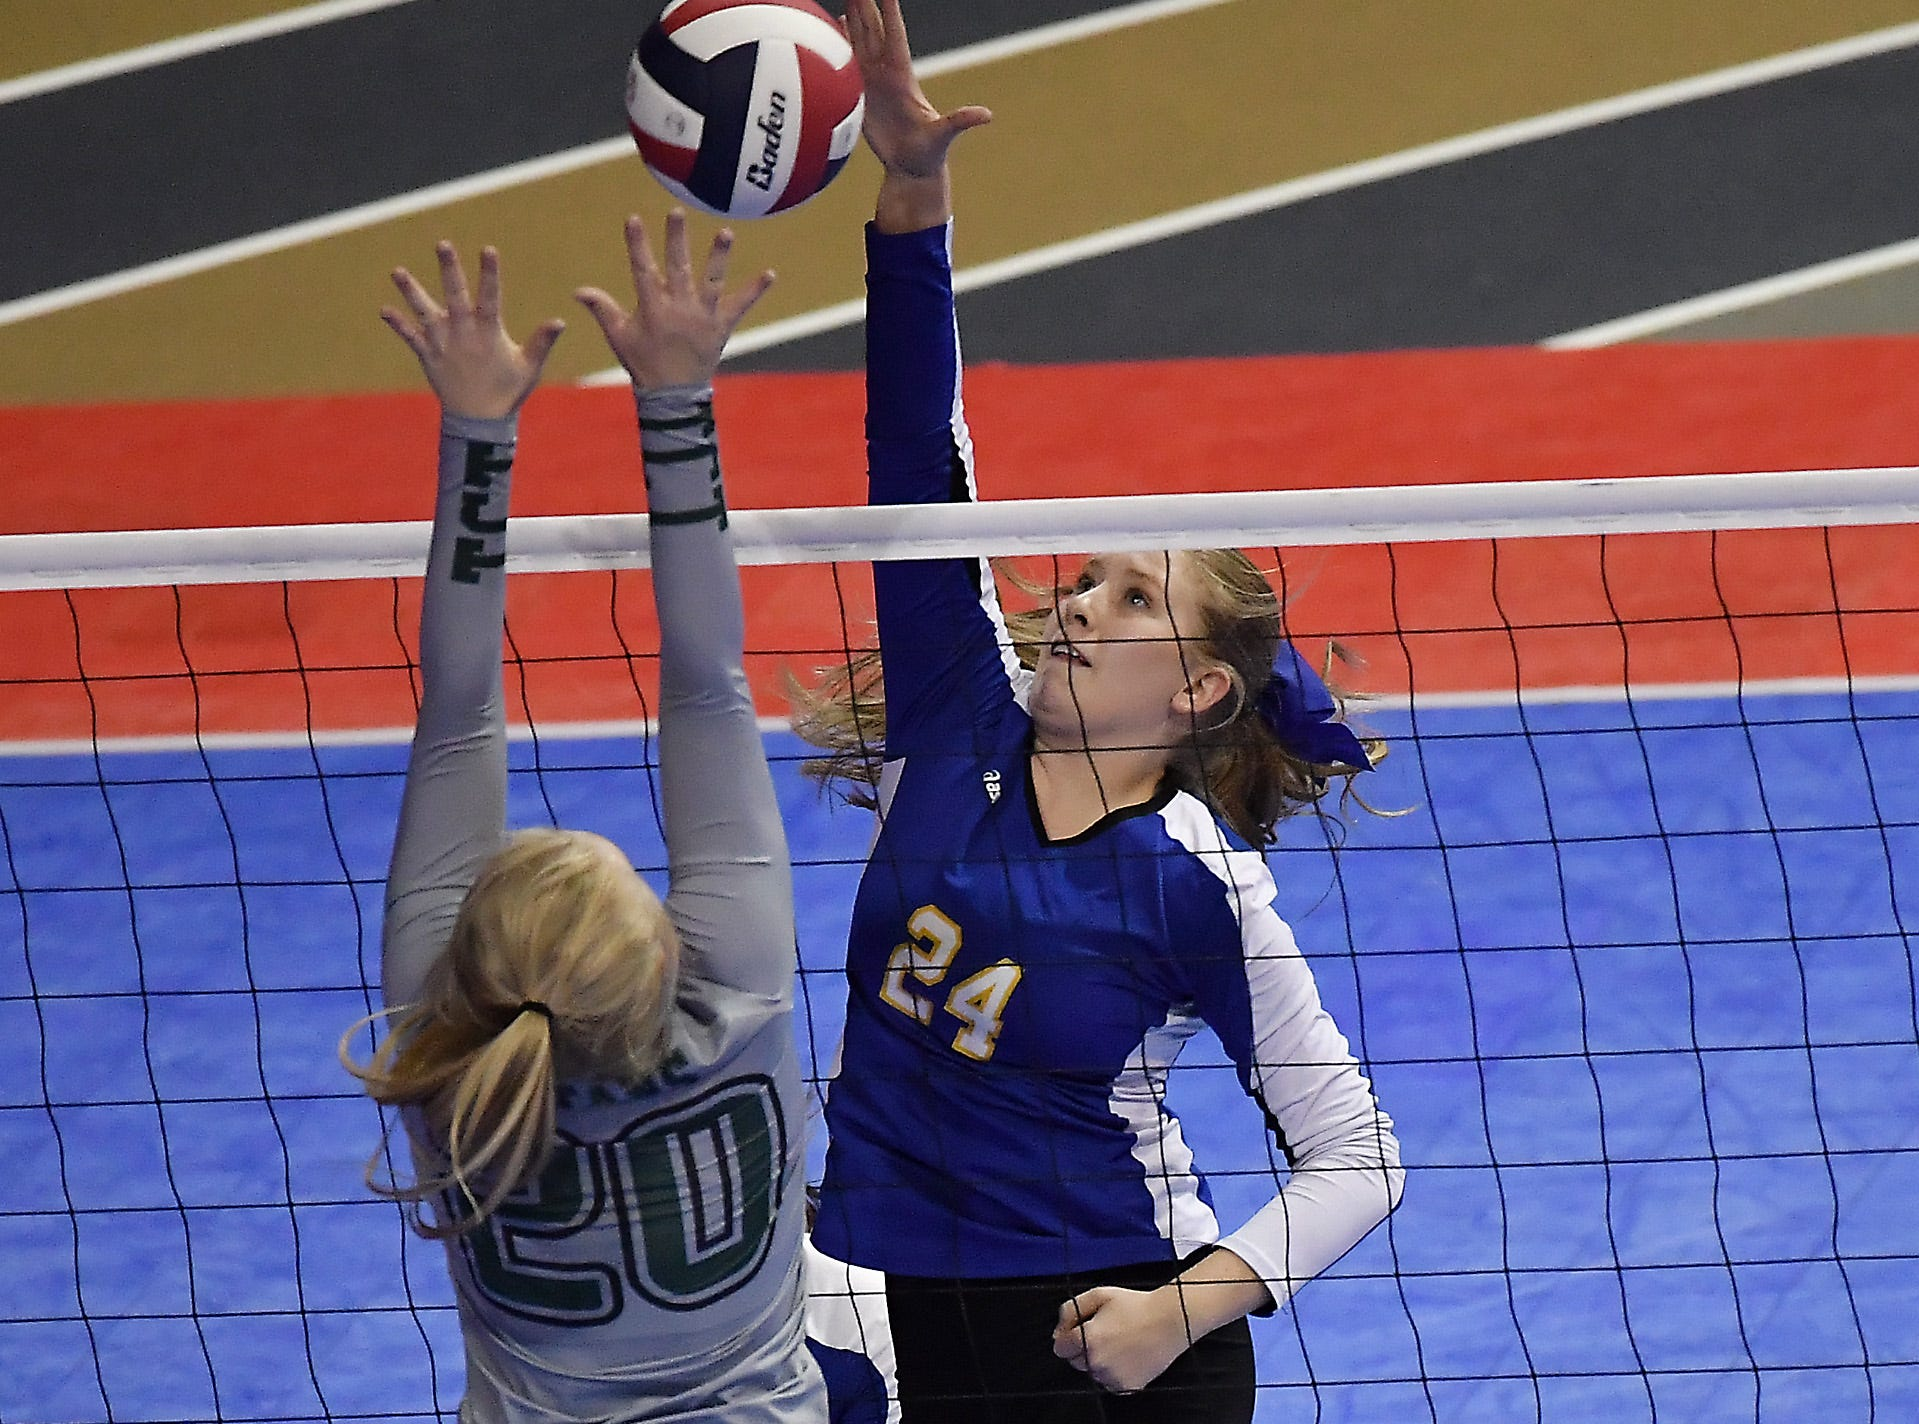 Ryleigh Backman of Scobey tips the ball as Tri-Cities' Sierra Stahl defends the net at the All-Class State Volleyball Tournament at the Brick Breeden Fieldhouse in Bozeman Friday.